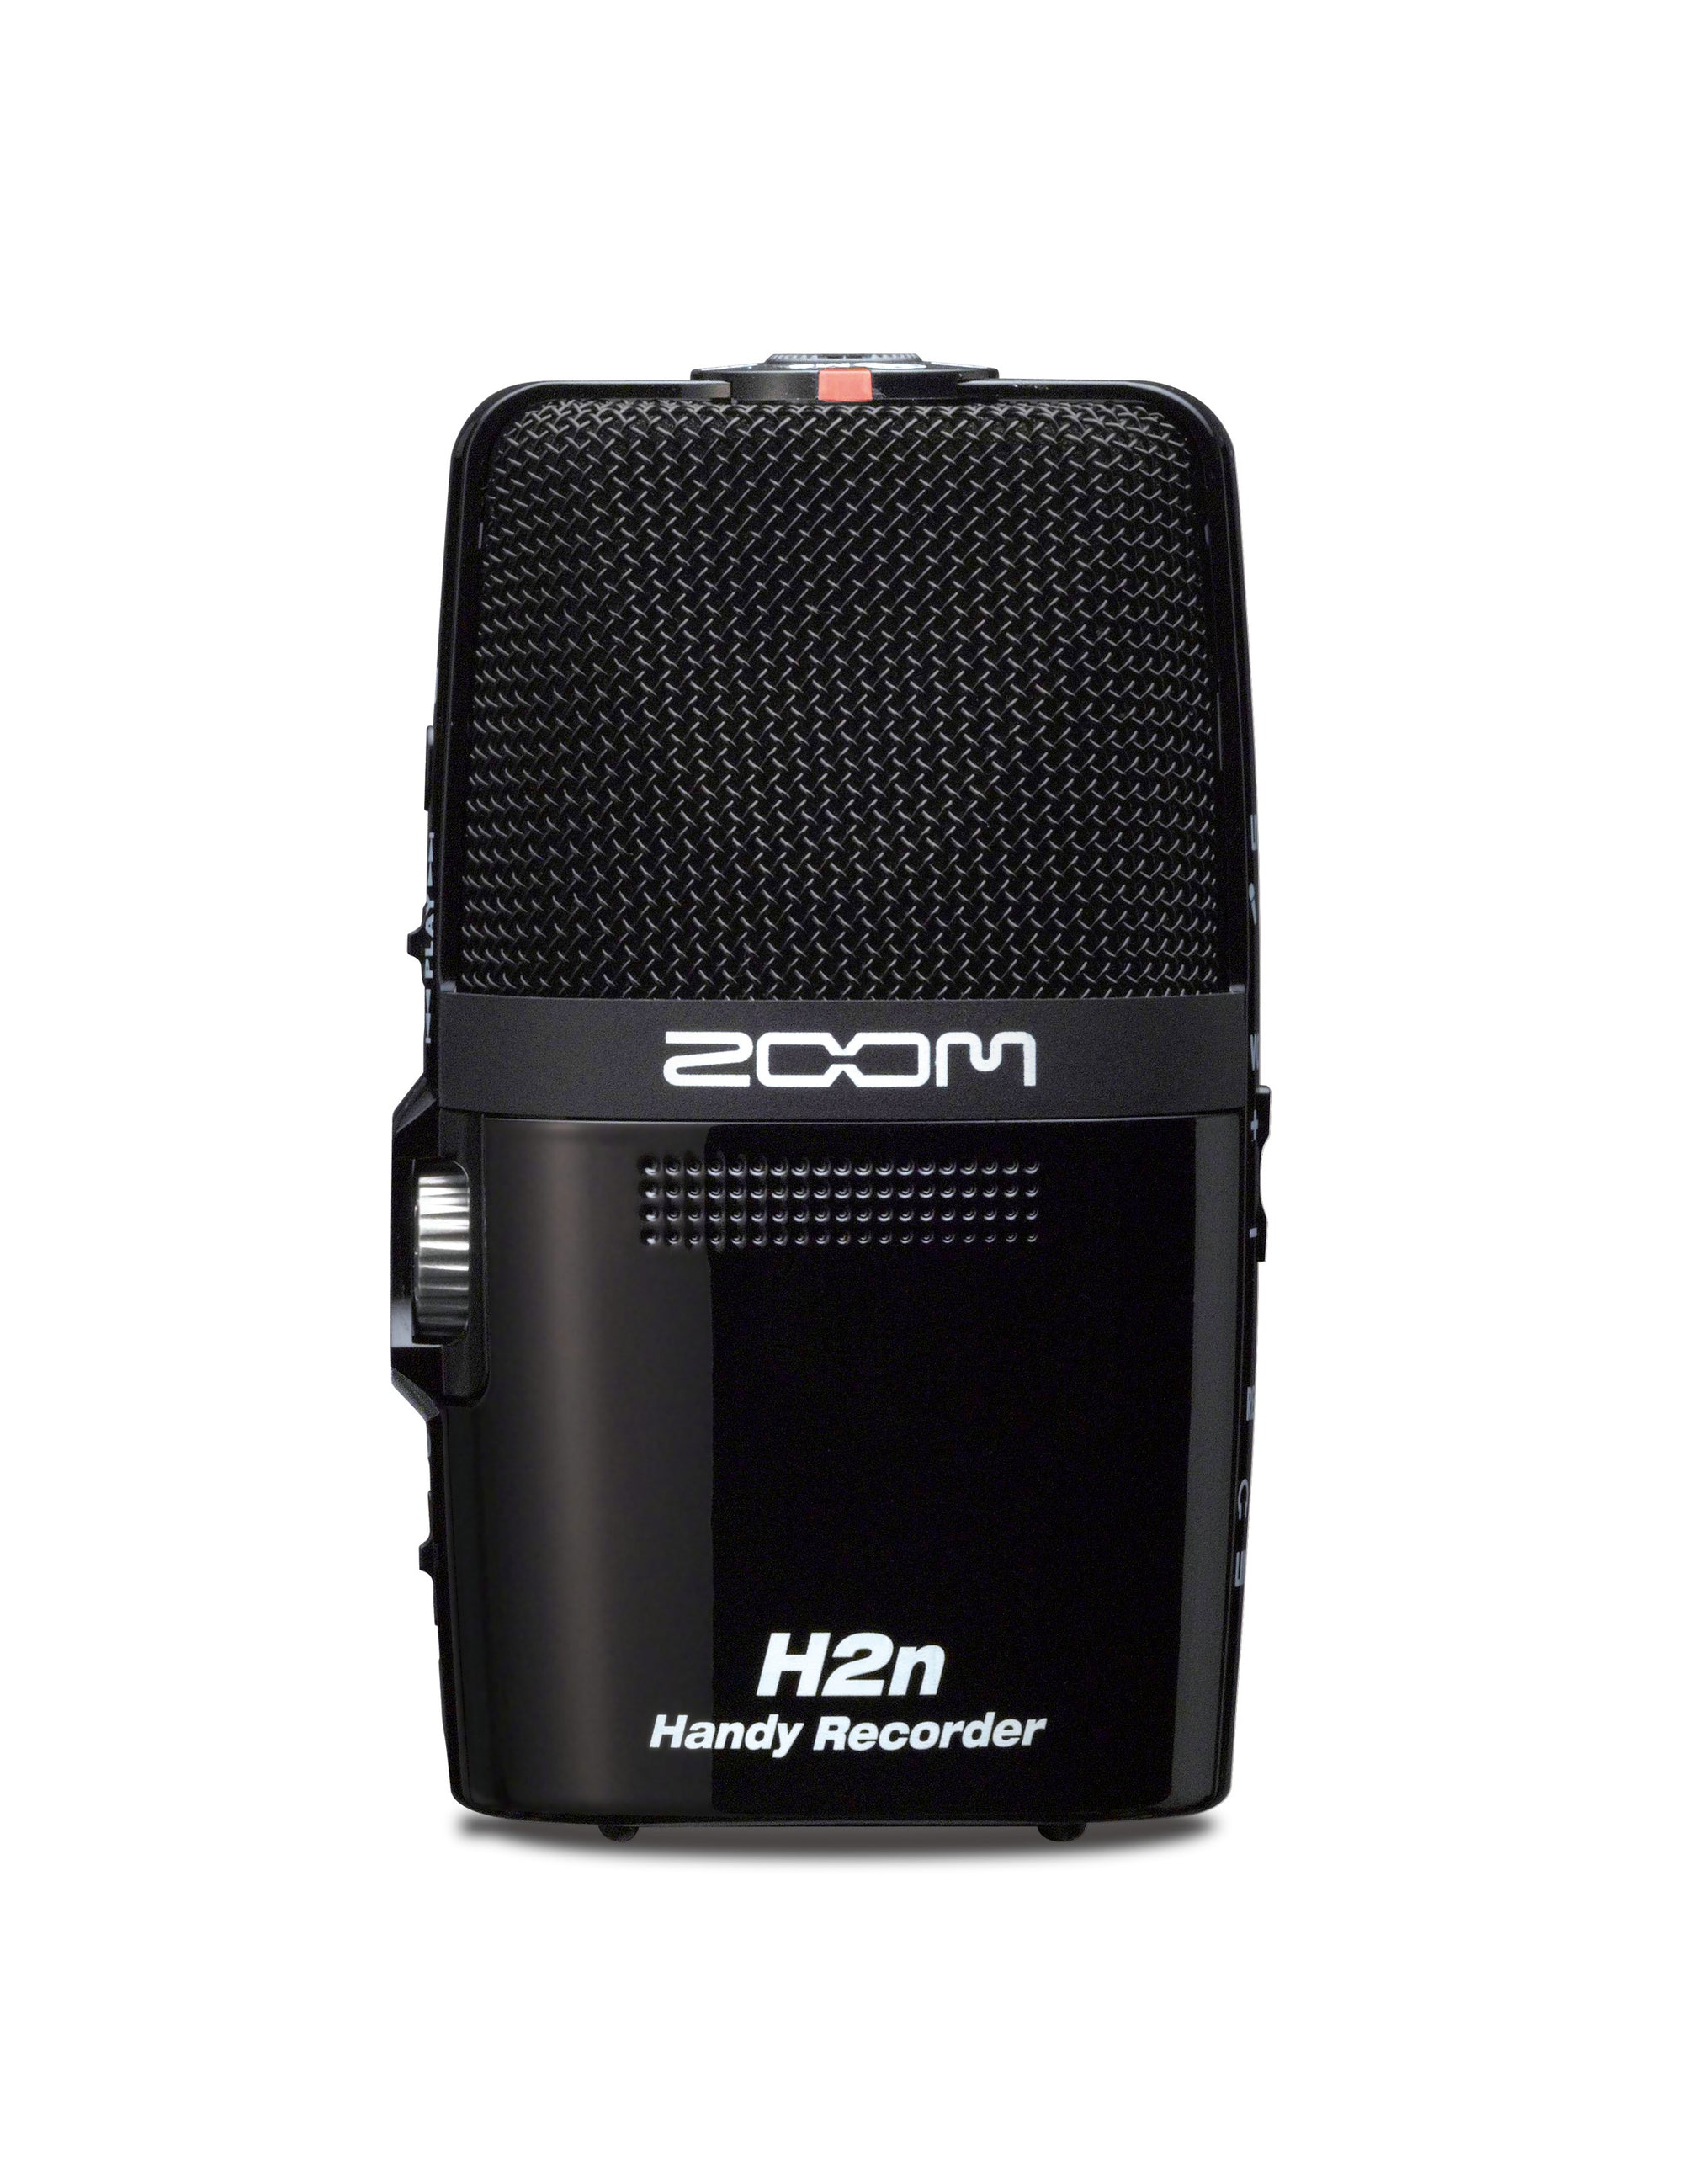 Zoom H2n Stereo/Surround-Sound Portable Recorder, 5 Built-In Microphones, X/Y, Mid-Side, Surround Sound, Ambisonics Mode, Records to SD Card, For Recording Music, Audio for Video, and Interviews - 305broadcast